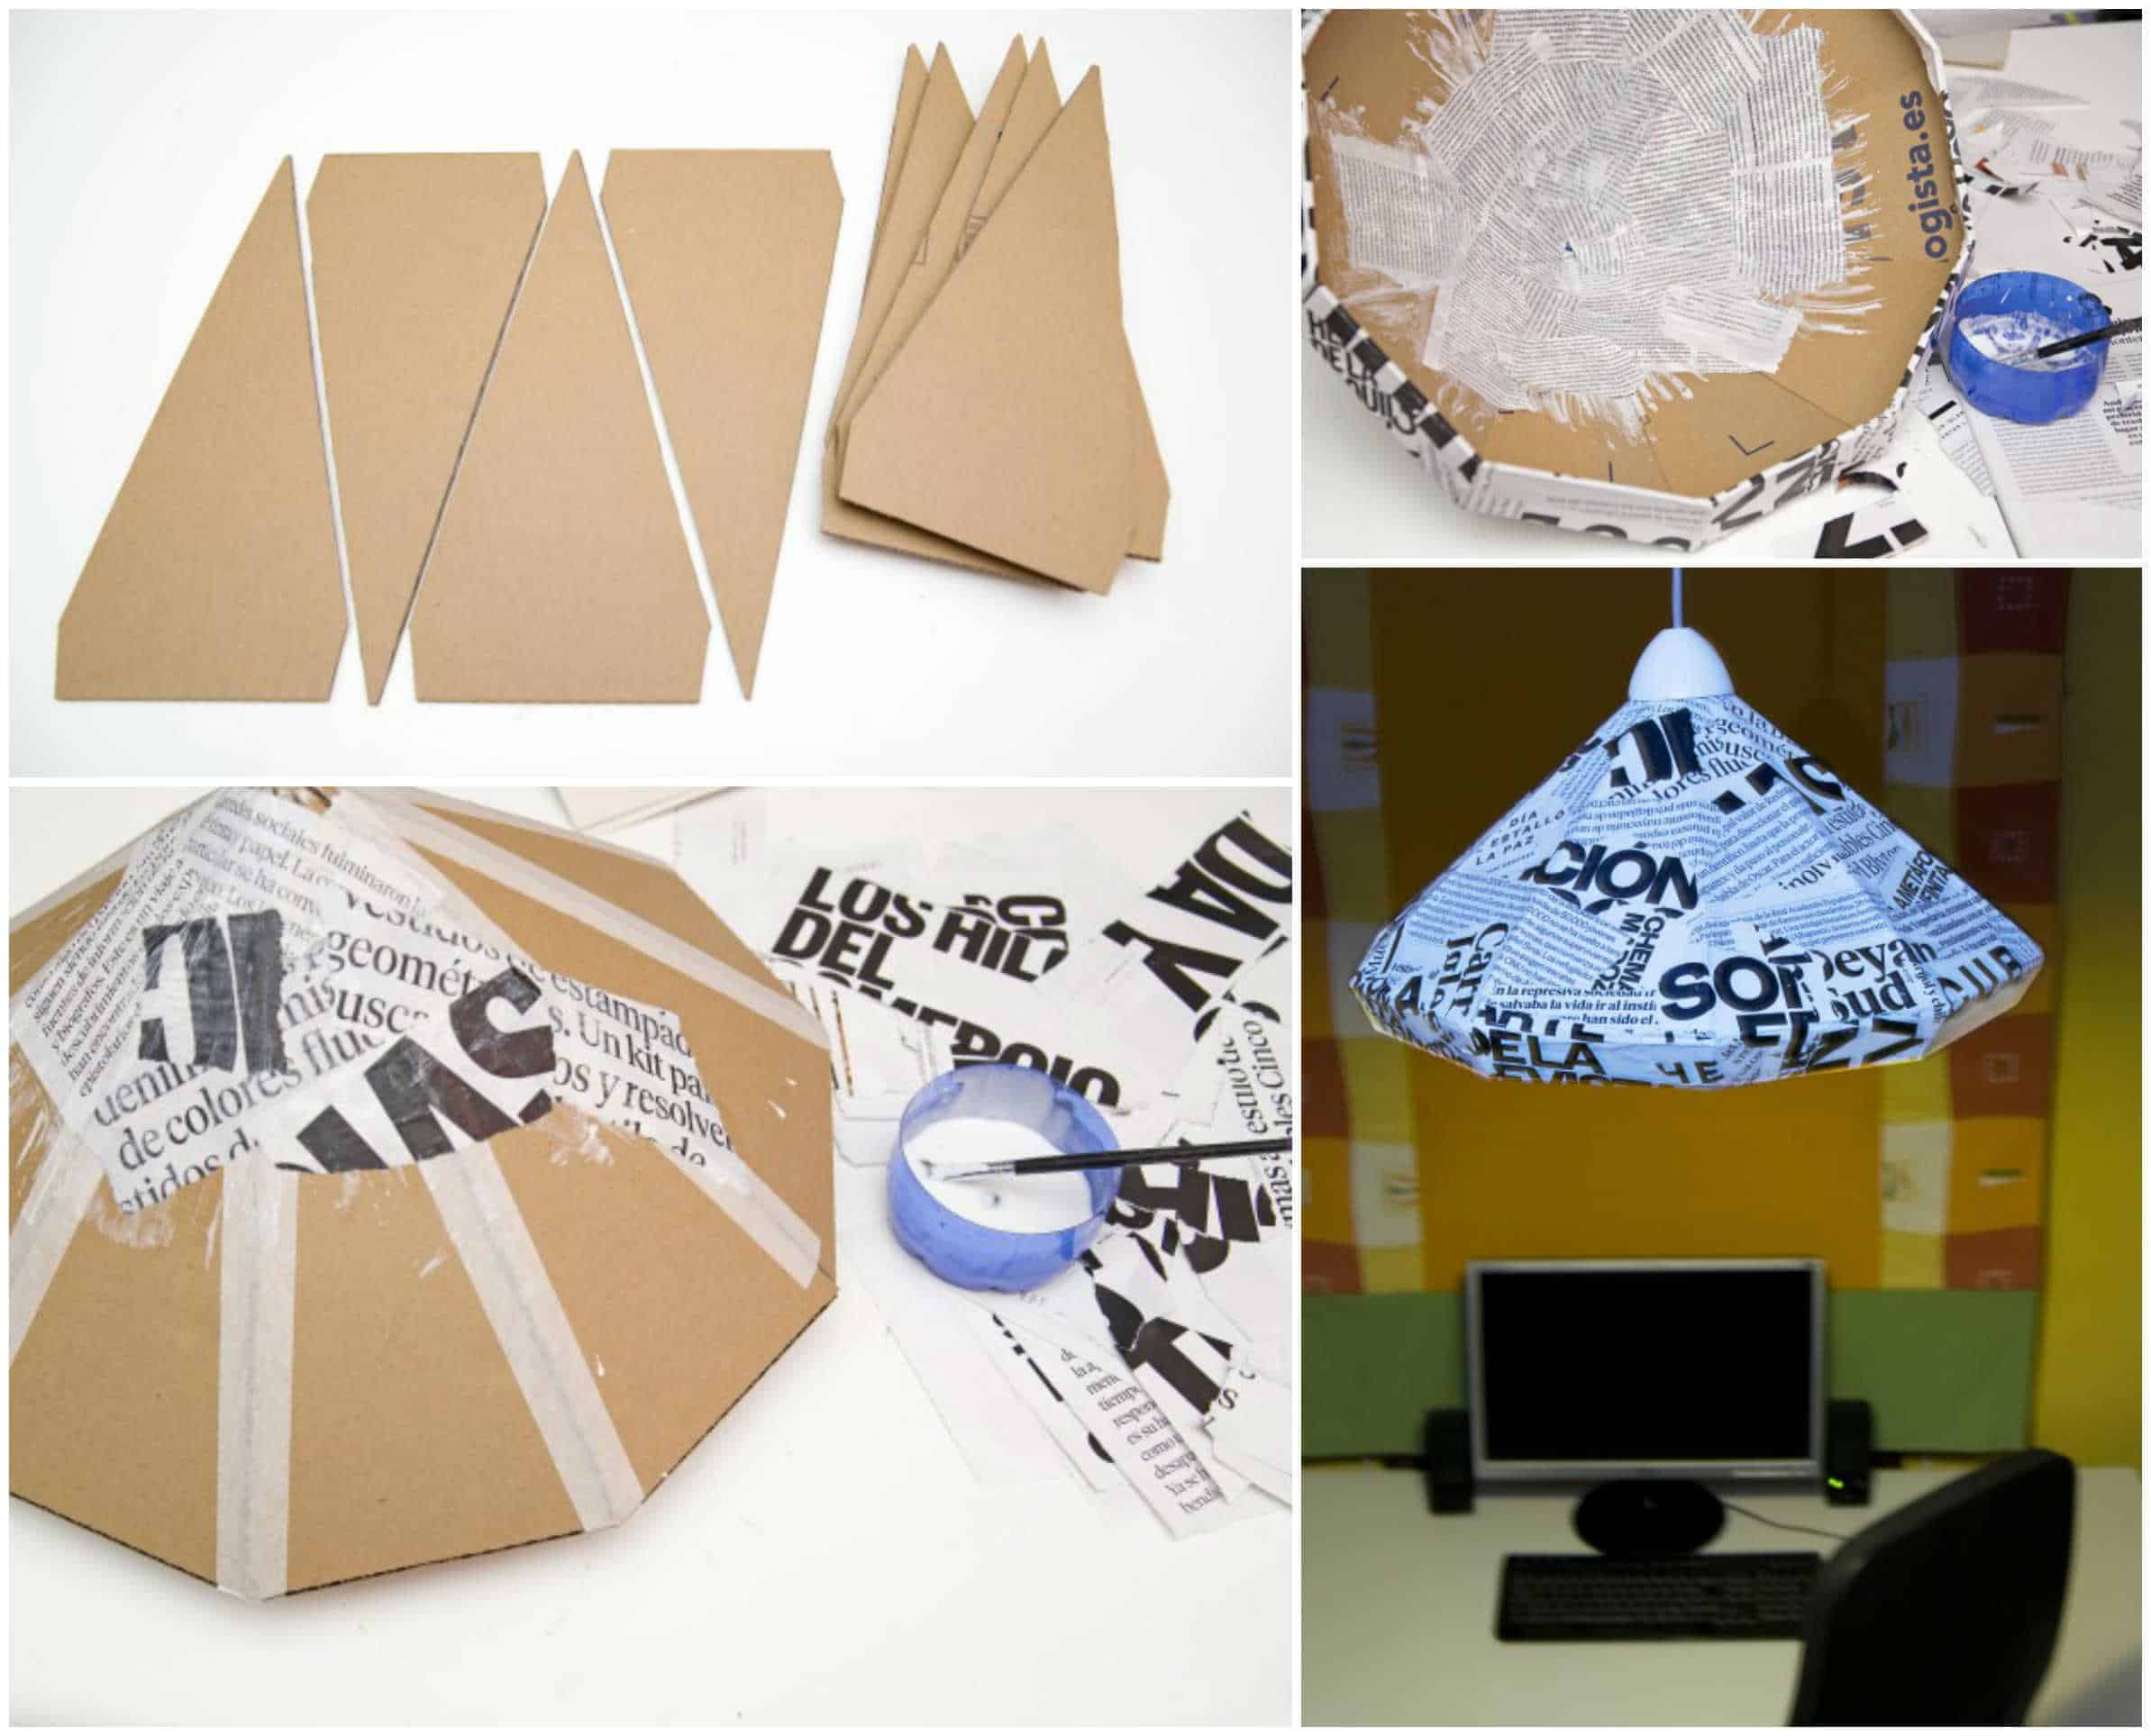 How To Make A Lamp With Cardboard And Paper • Recyclart for Recycled Paper Lamp  177nar